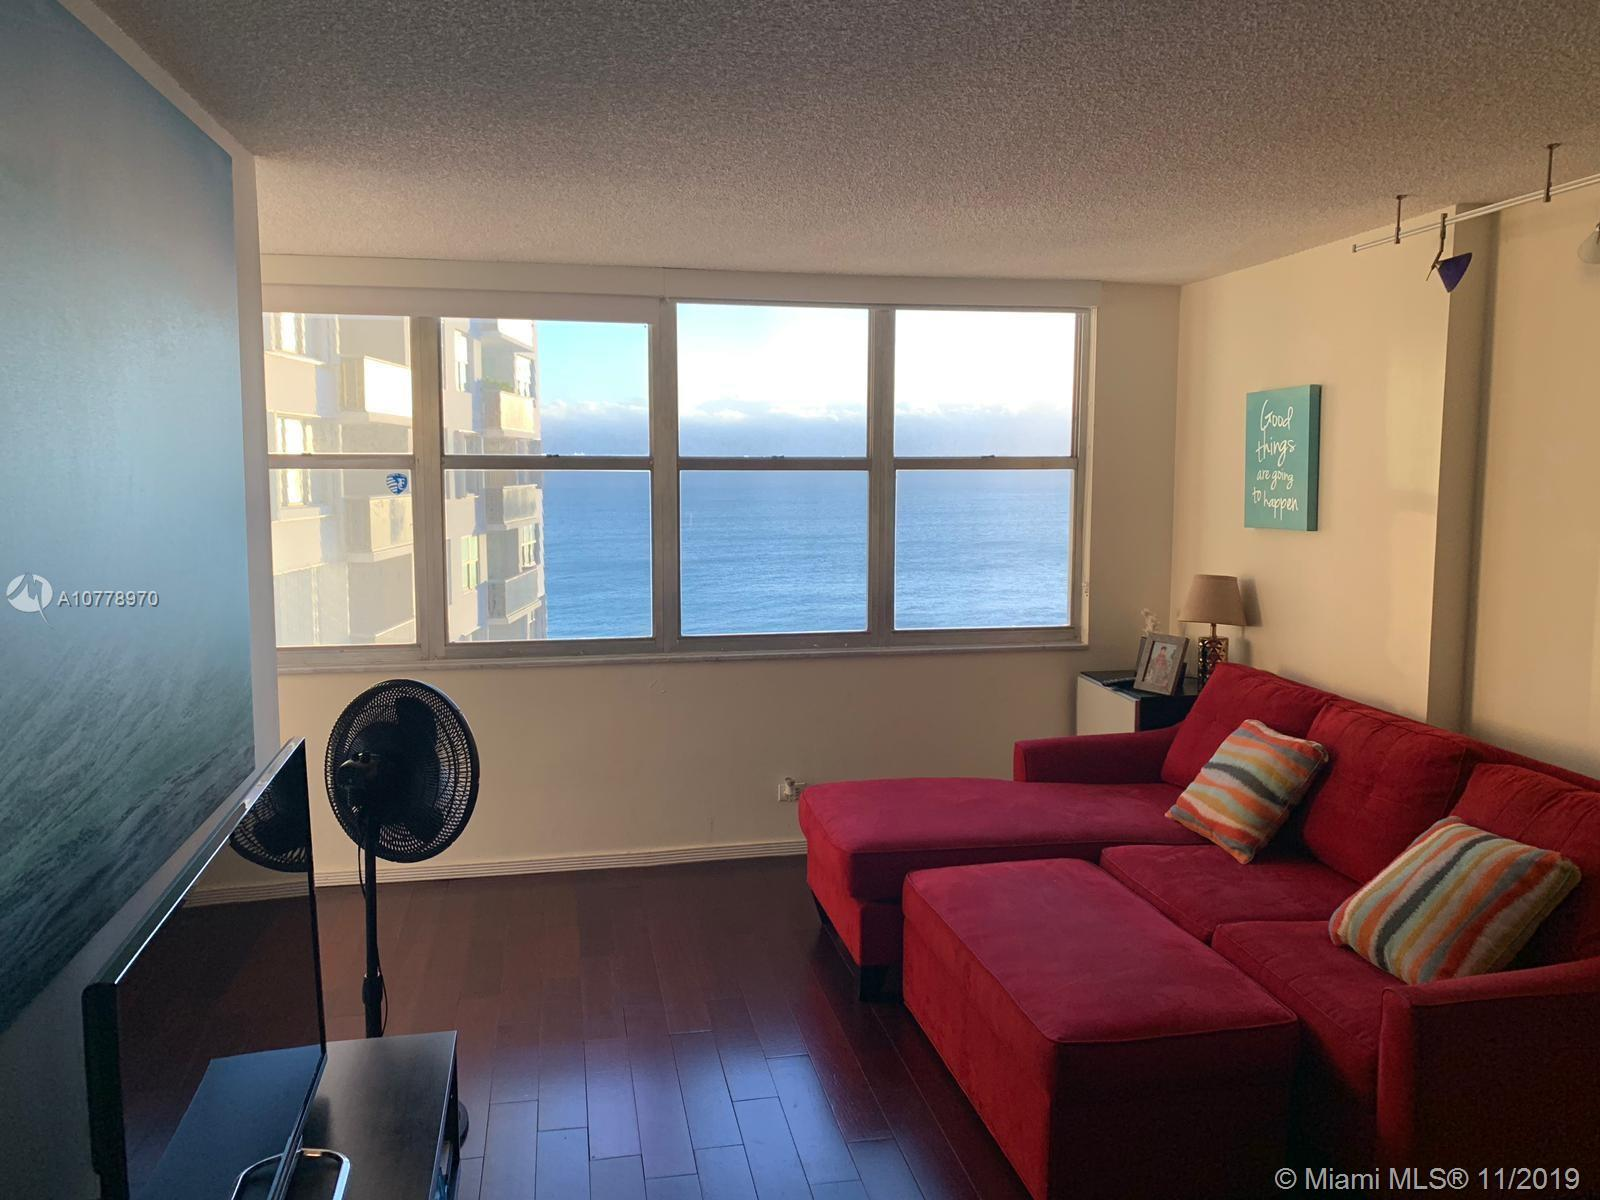 6039  Collins Ave #1210 For Sale A10778970, FL